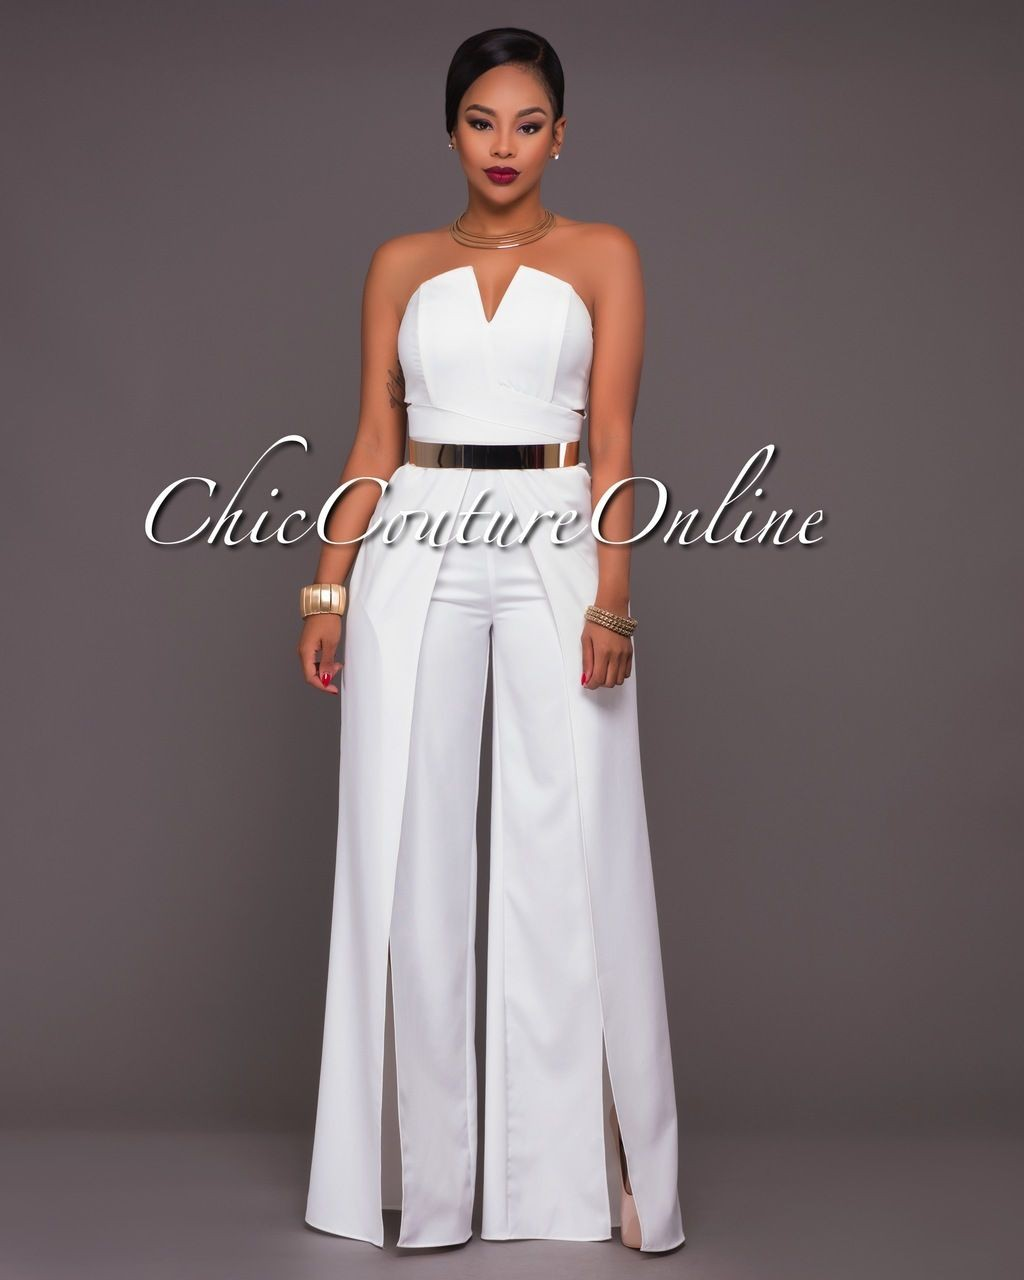 Lookbook fashion with bridal party dress, strapless dress, cocktail dress, romper suit, trousers